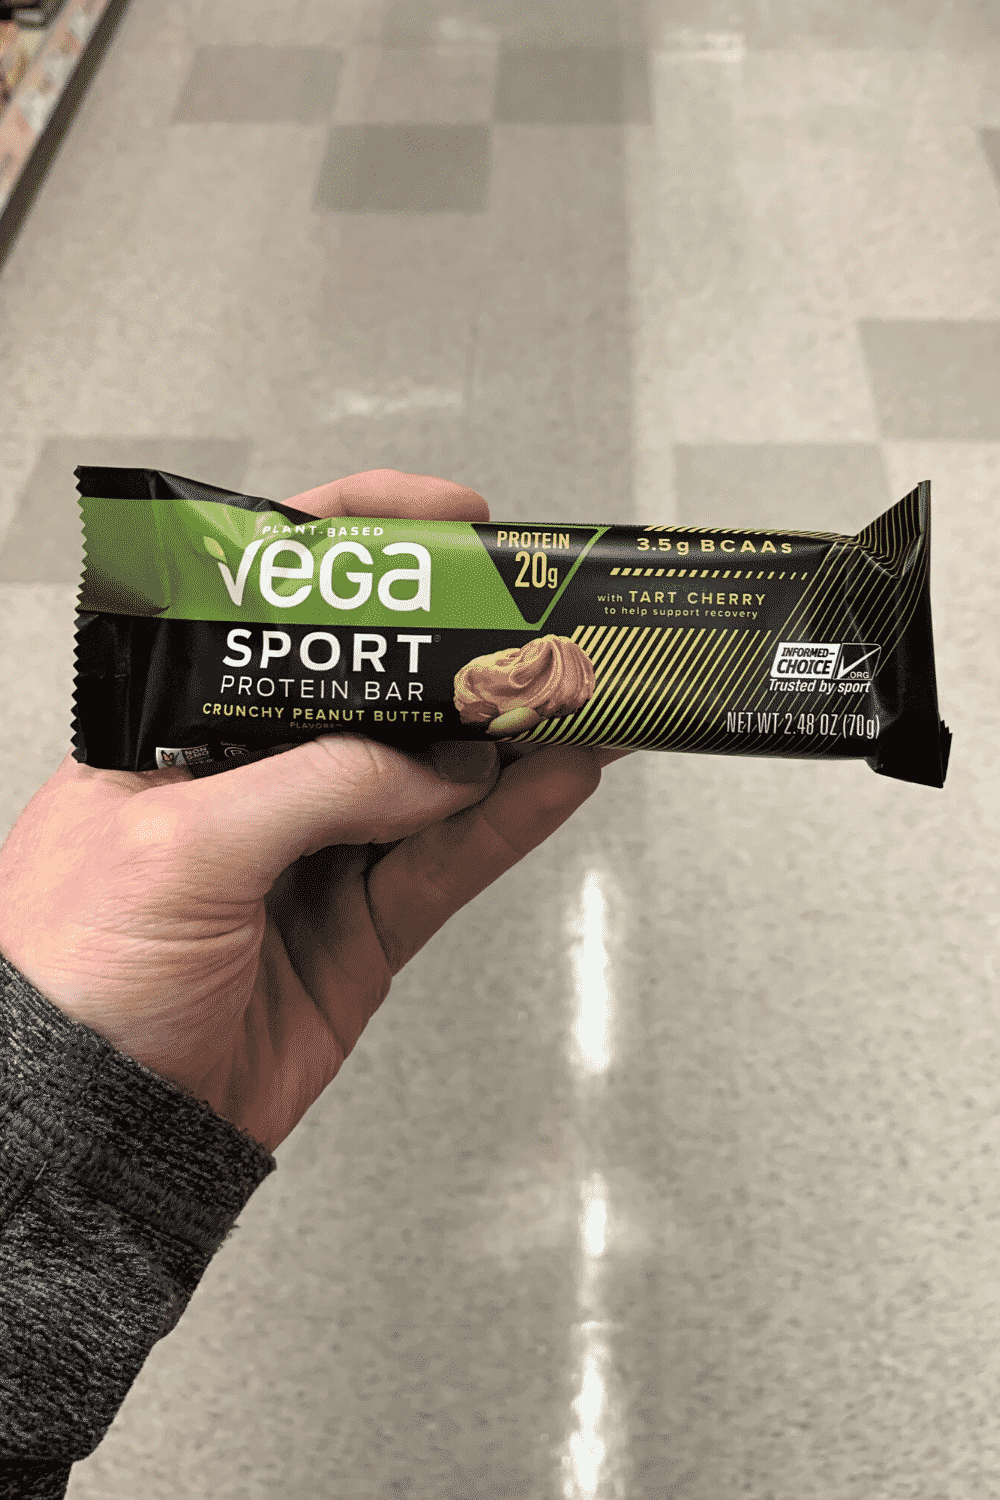 A hand holding a wrapped crunchy peanut butter vega sport protein bar